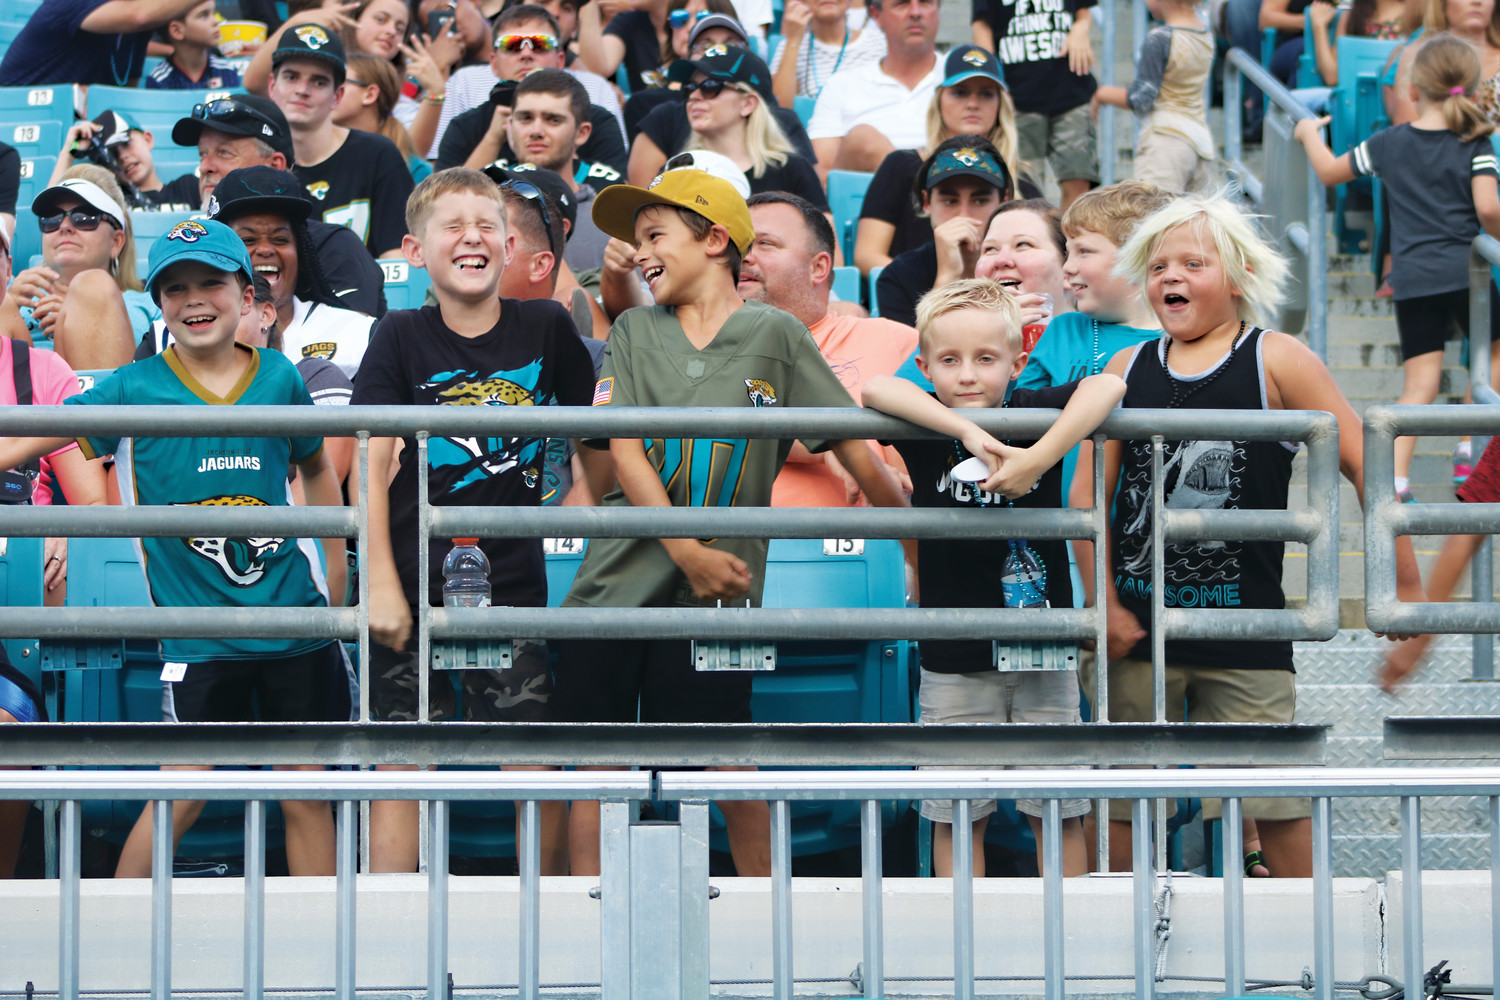 A group of younger Jaguars fans enjoys the scrimmage.